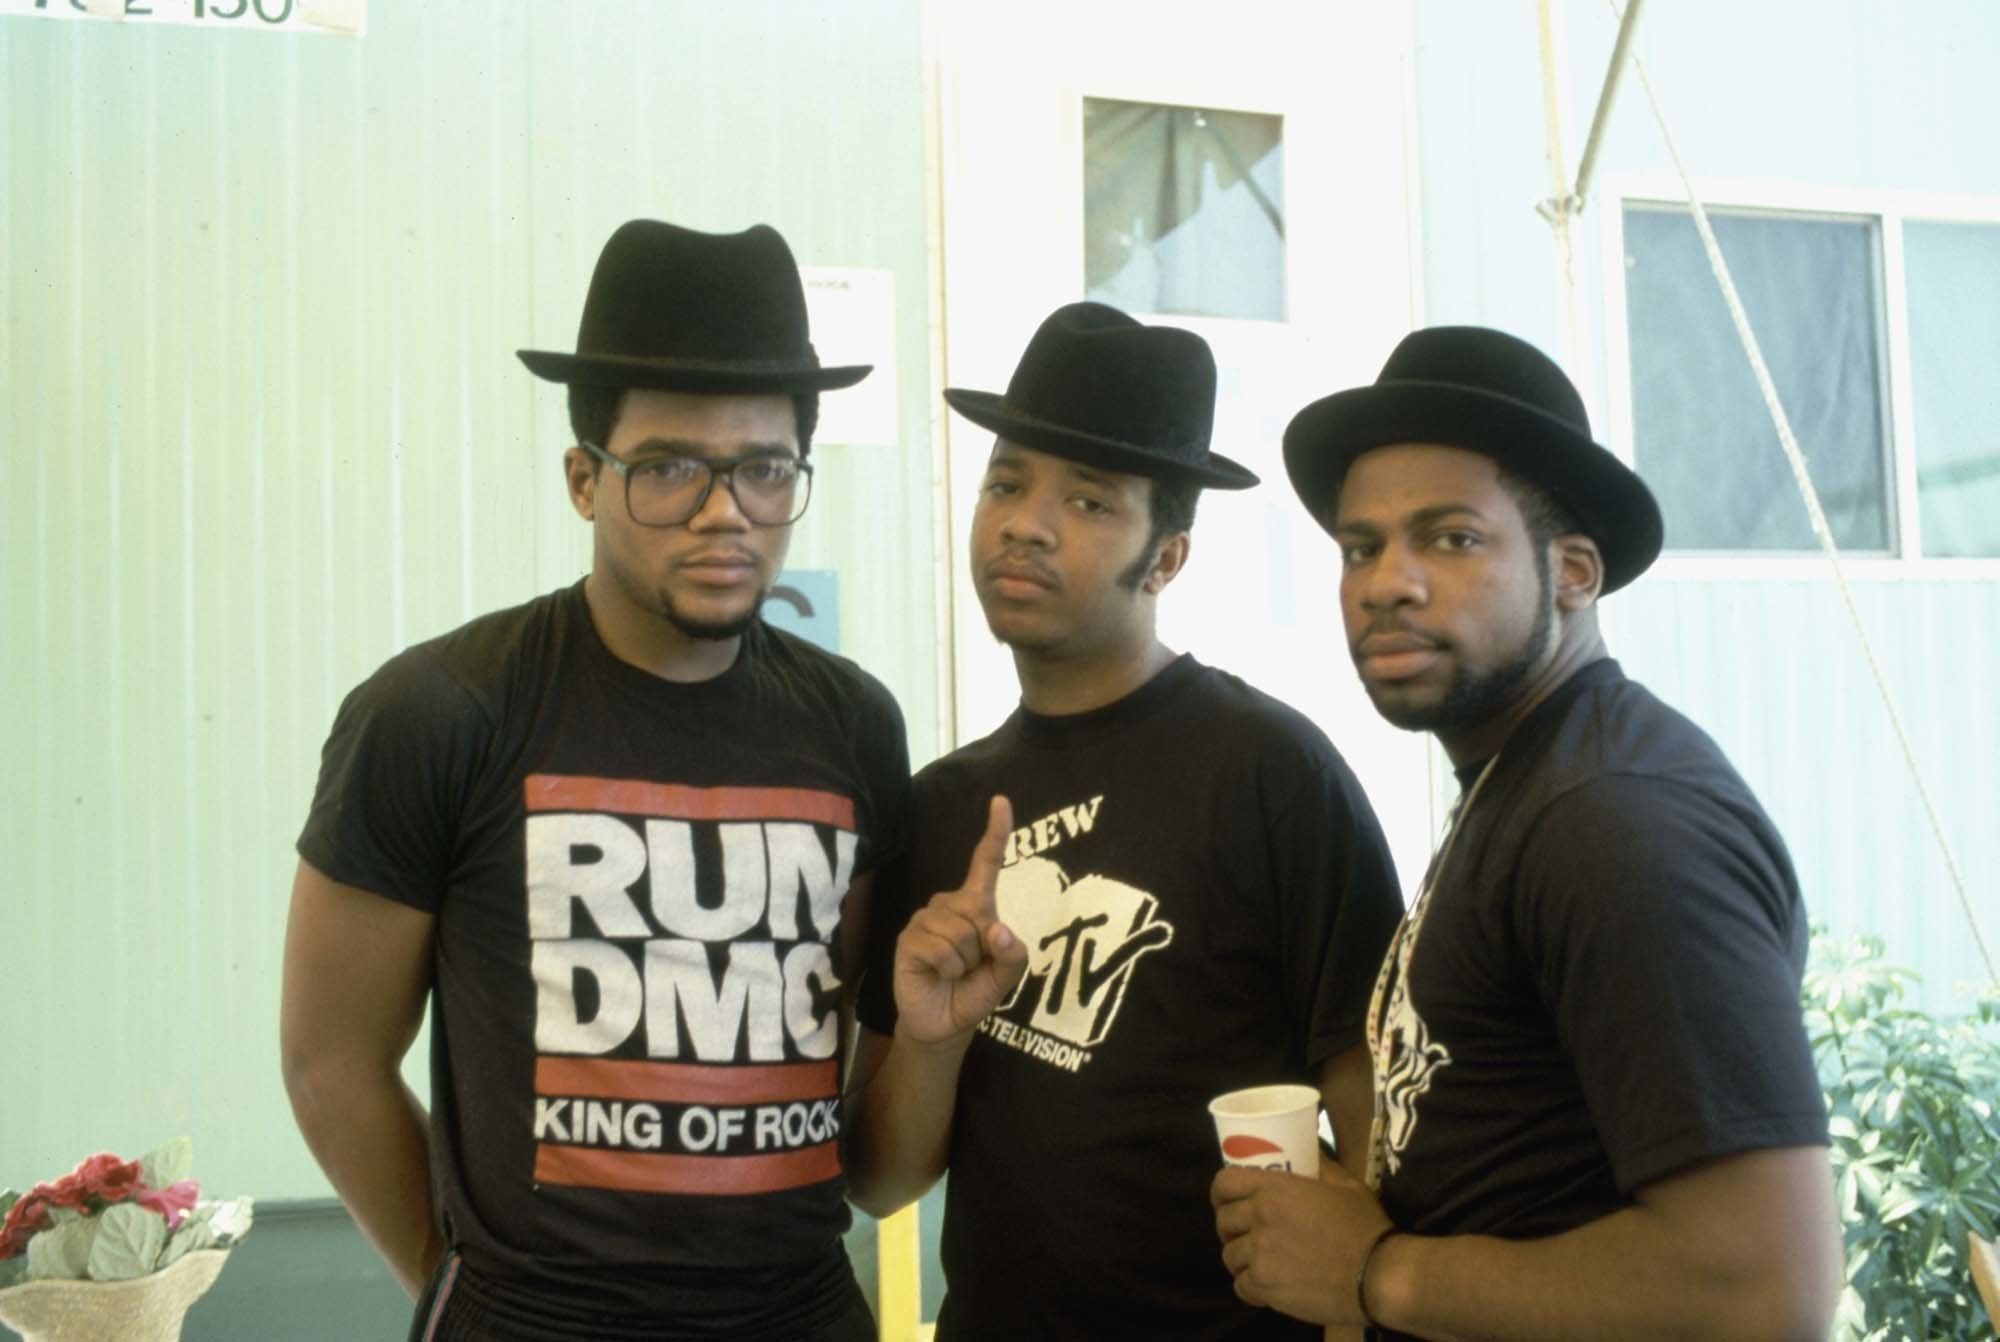 4ed8cd39d72 Who  Run DMC Signature hat  They created a new sound while wearing retro  porkpie hats.